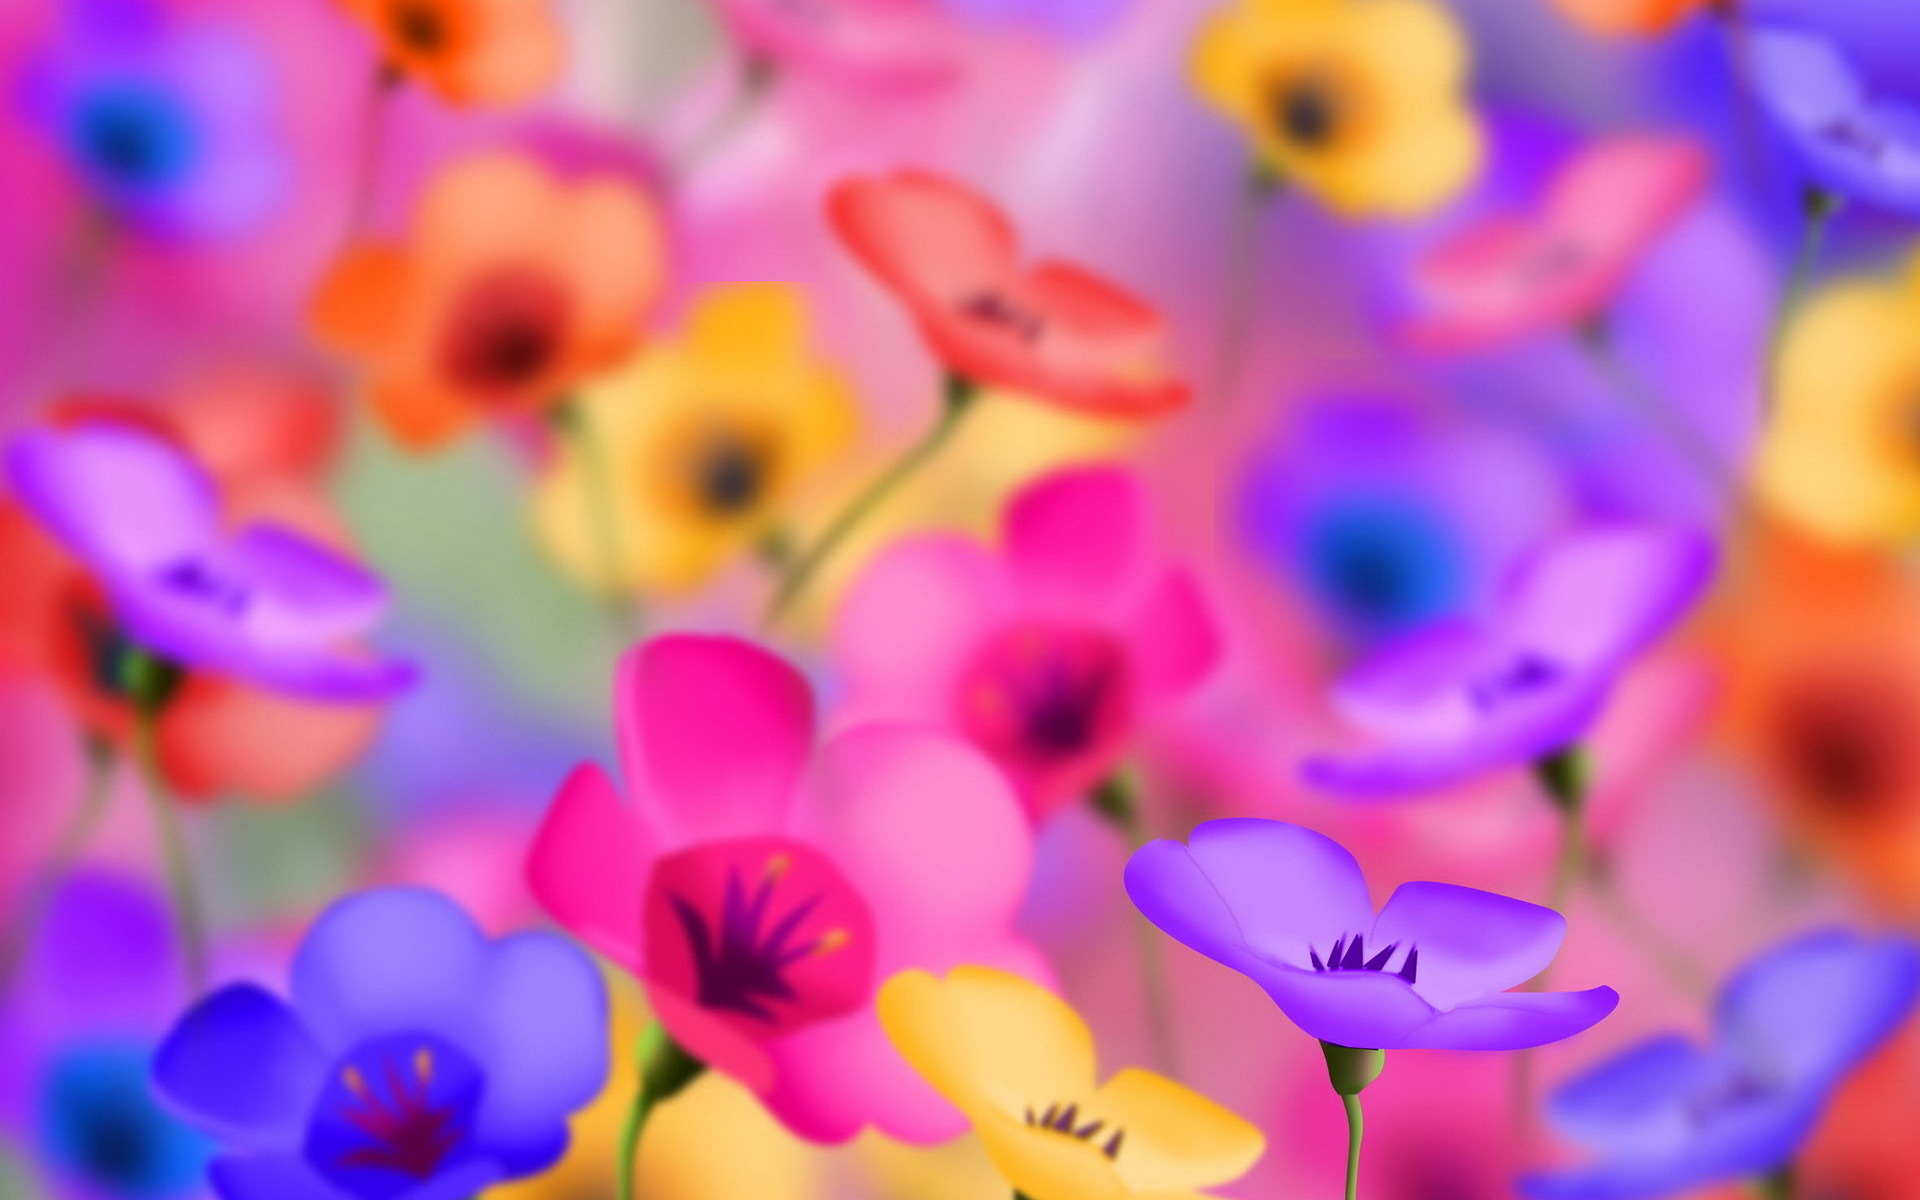 Bright Flower Wallpaper: Wallpapers for Gt Bright Flower Backgrounds 1920x1200px